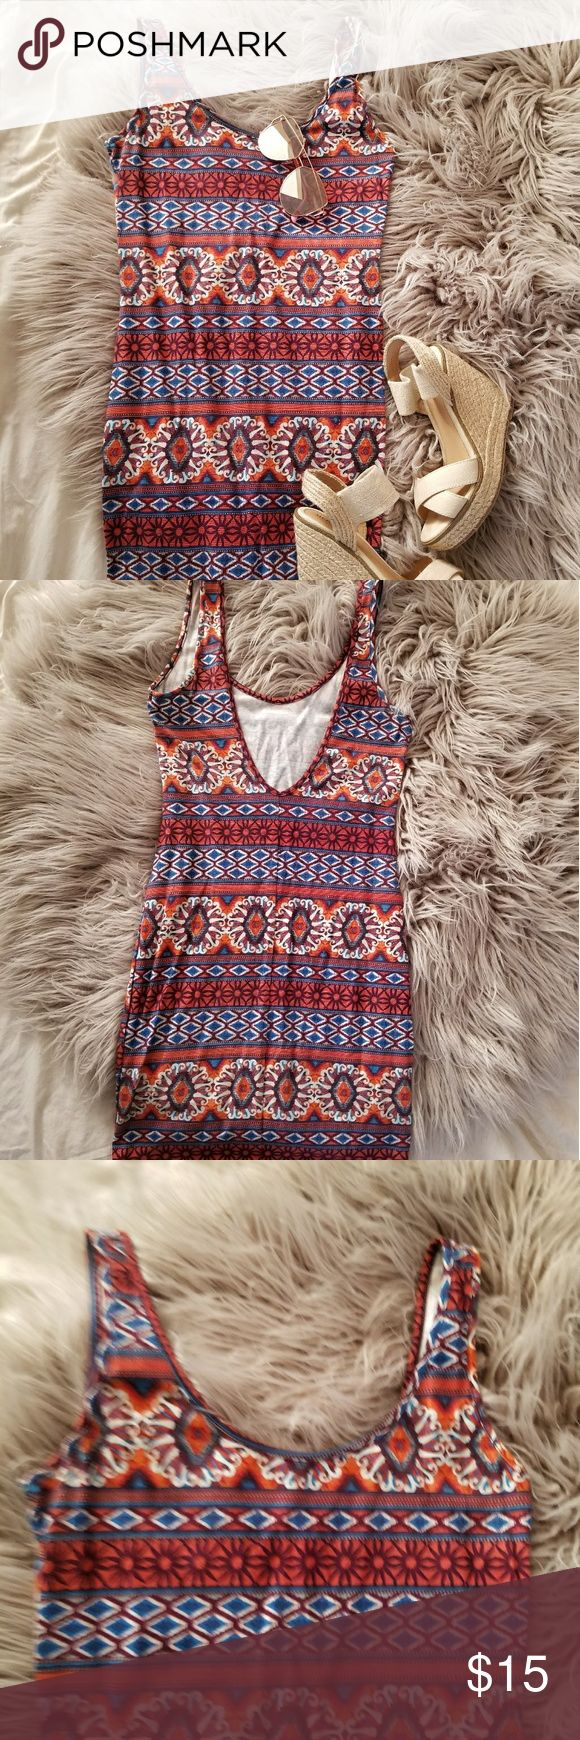 Orange and blue Aztec bodycon dress Orange and blue Aztec print, super flattering body con style dress with deep scoop back , colors make you look so tan, must have for spring break!! I cut out the tag cause it kept showing in the scoop back, but it's from forever 21 , and a size small..  From very top shoulders to very bottom it measures 32 inches. From pit to bottom 25 inches. Forever 21 Dresses